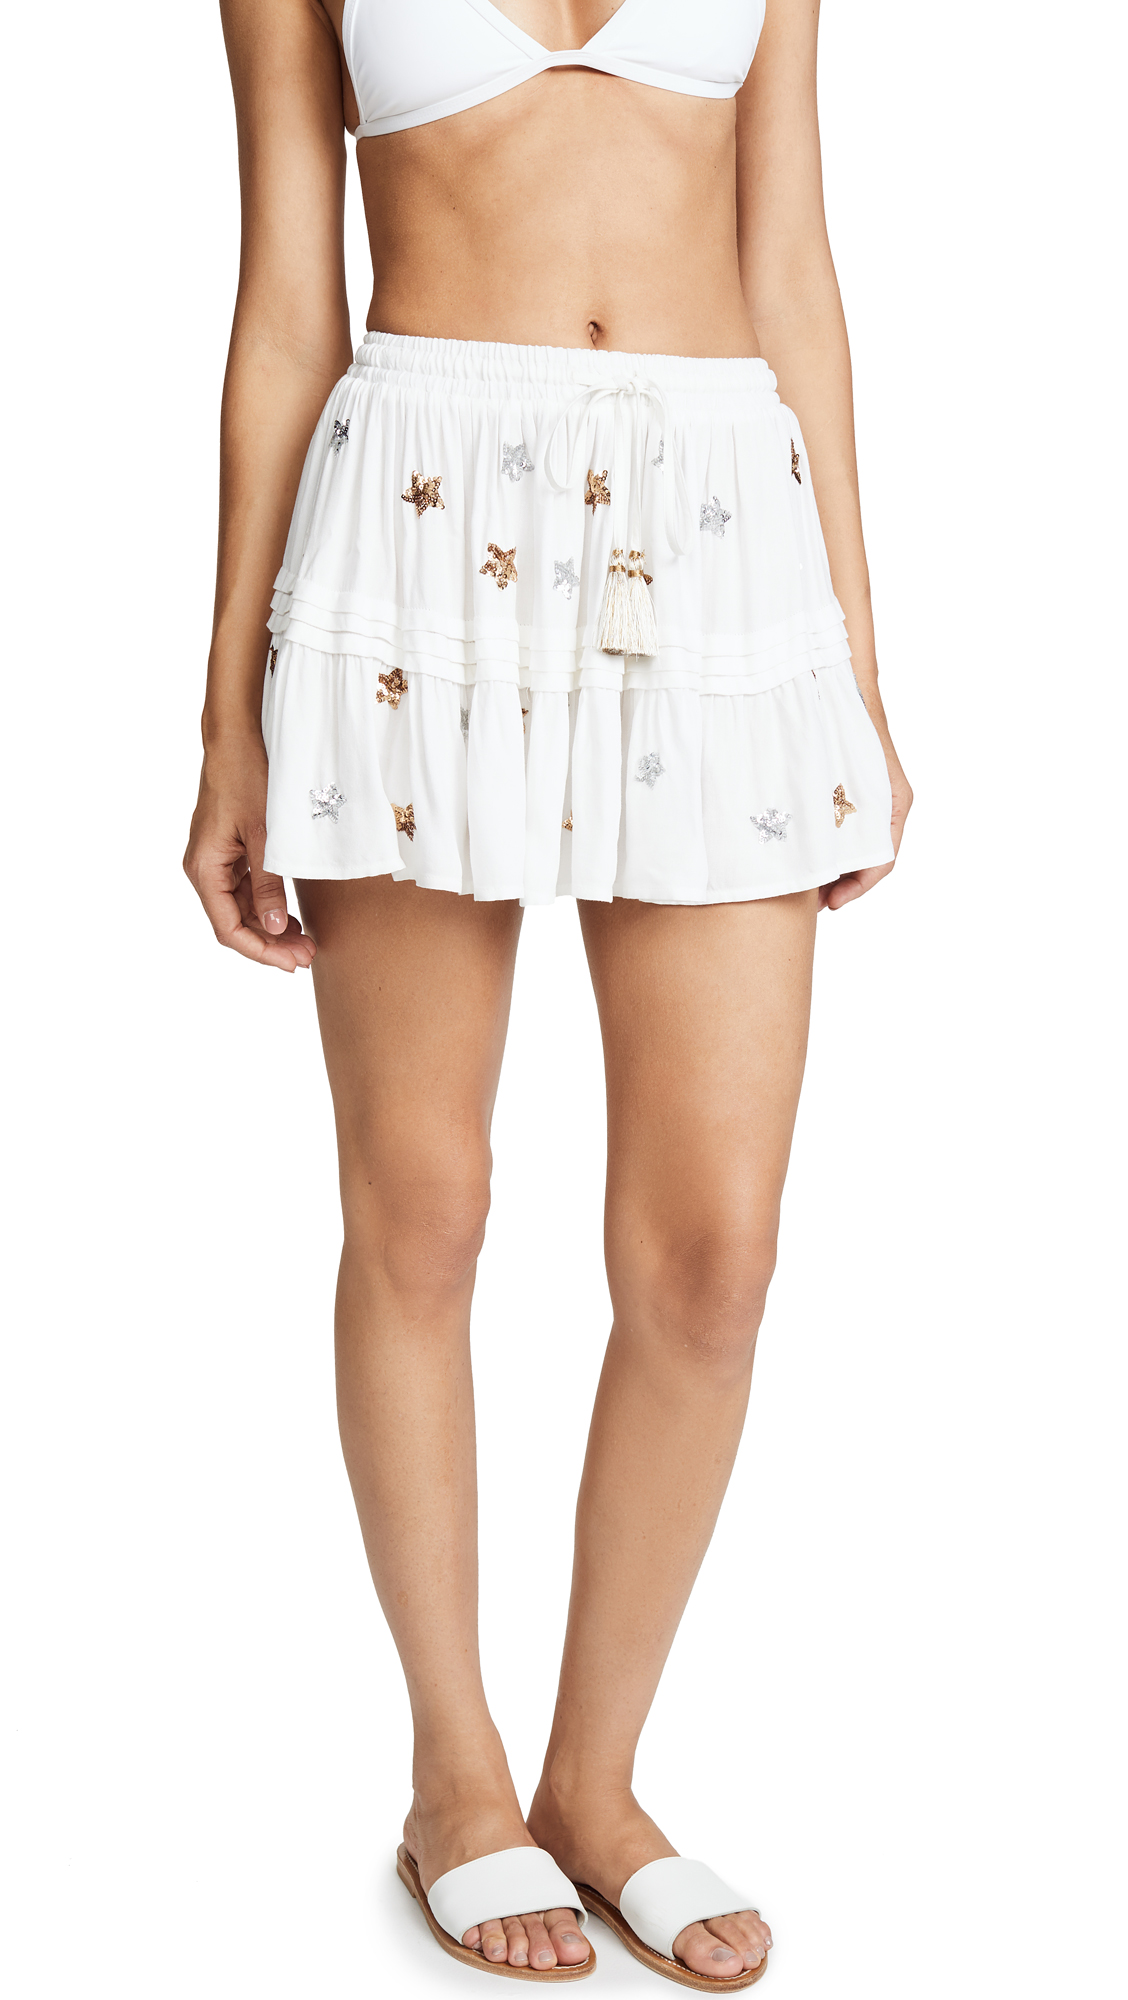 ASTRAL SHORT SKIRT